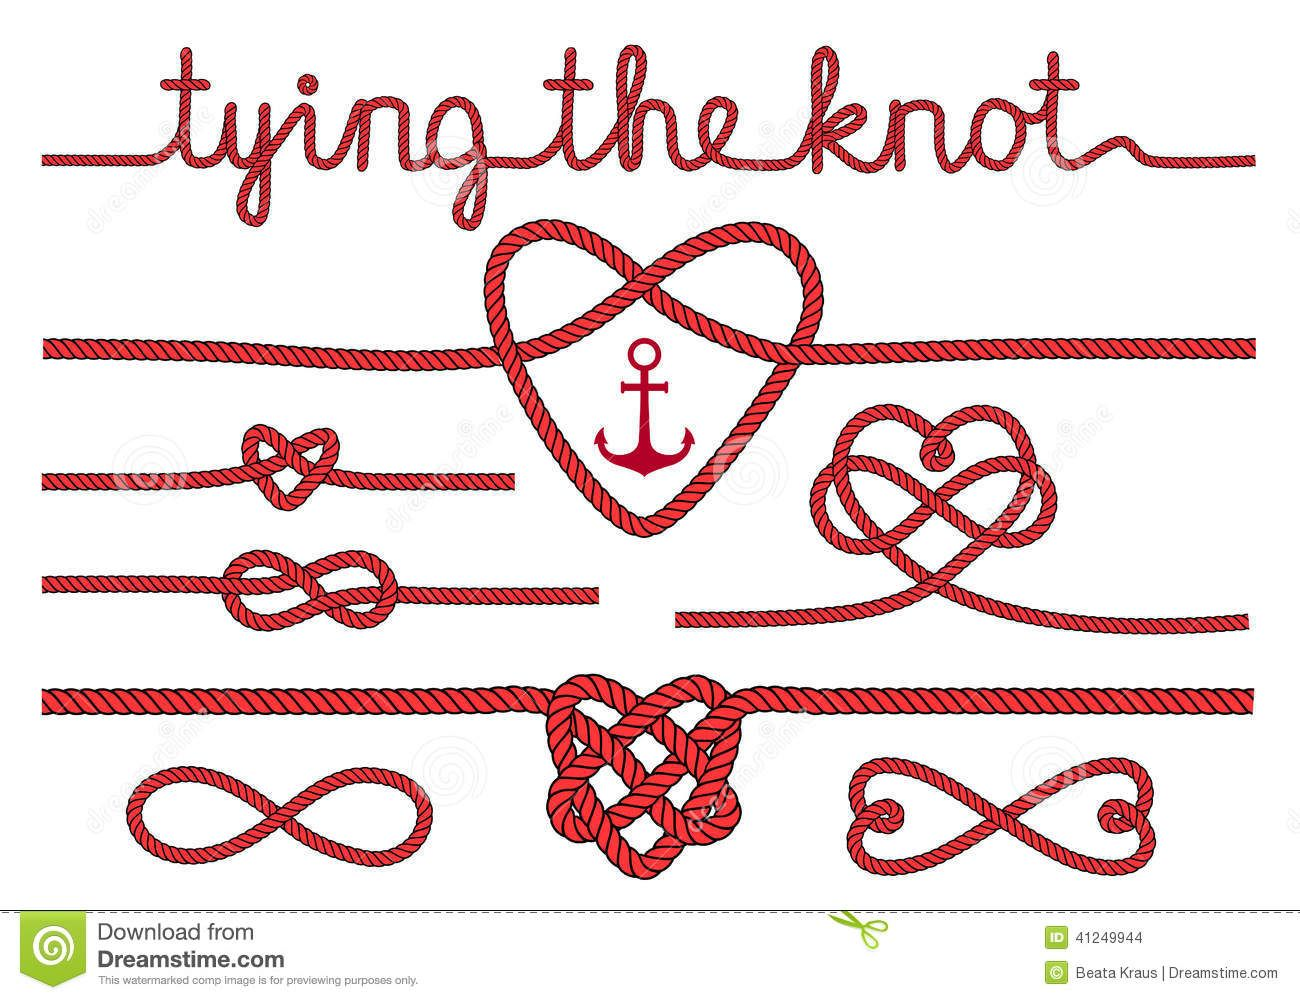 Heart love knot png free clipart vector vector library stock Rope Hearts And Knots, Vector Set - Download From Over 28 ... vector library stock